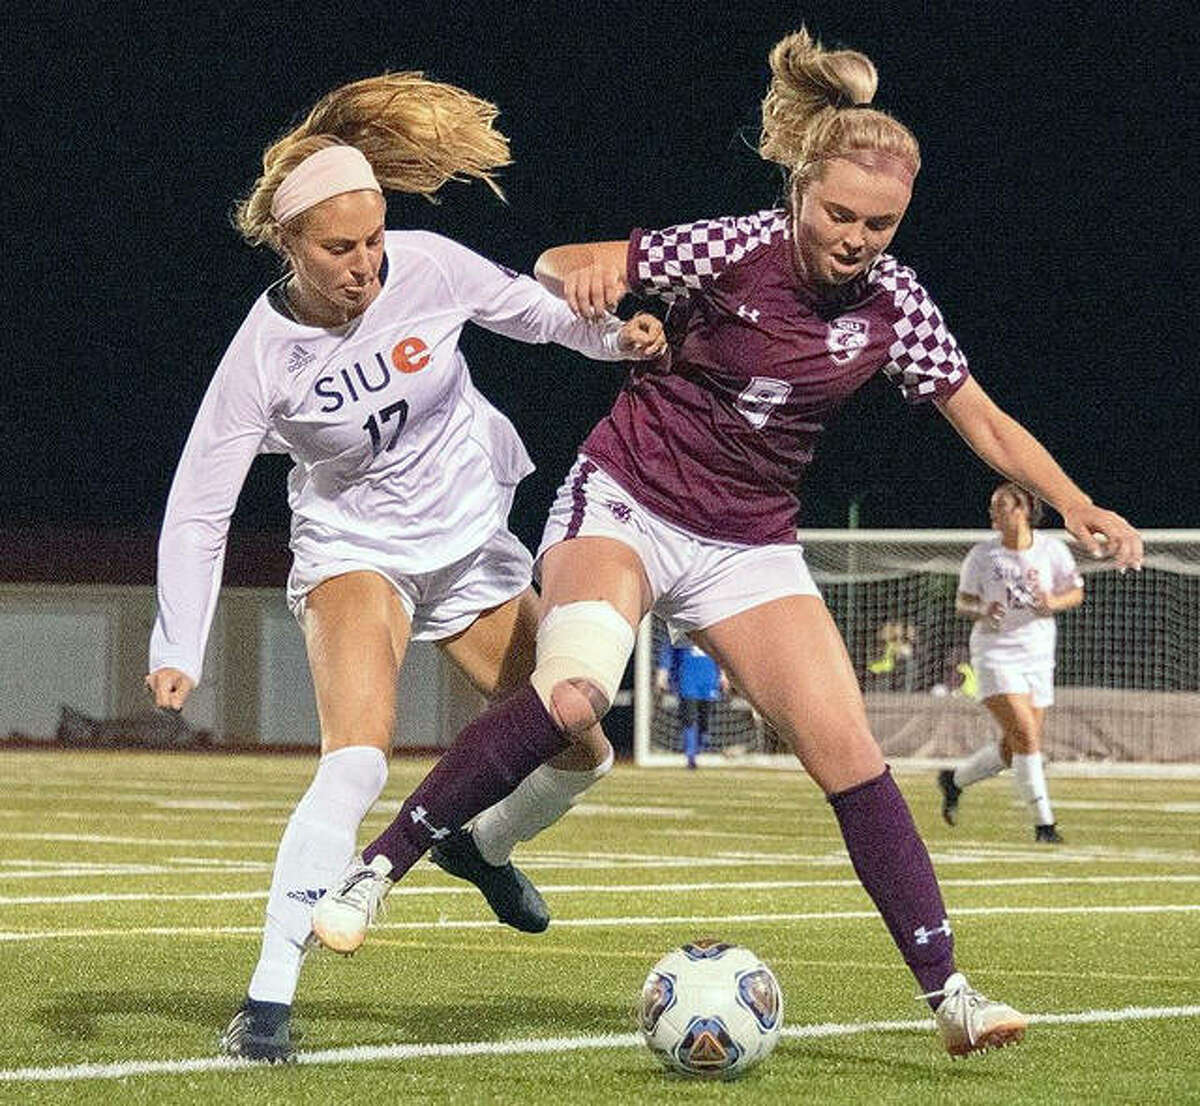 MacKenzie Litzsinger of SIUE, left, scored the only goal of the game in the Cougars' 1-0 victory over Tennessee Tech Tuesday in Cookeville, Tenn. She is shown in 2019 action against SIU Carbondale.